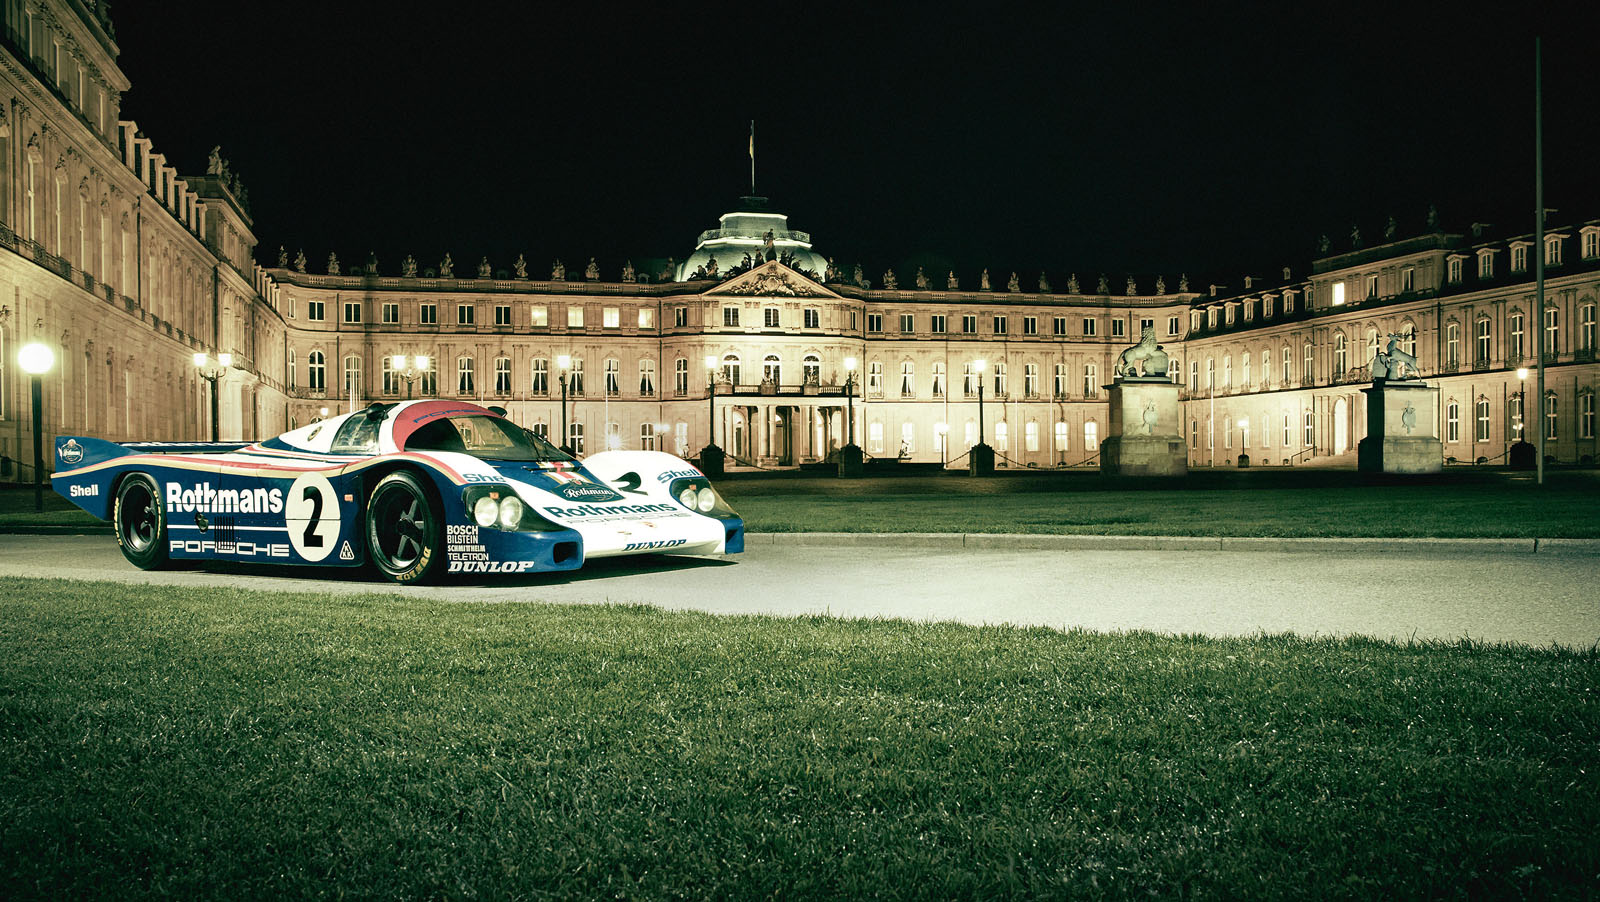 1614105_once_the_residence_of_kings_and_princes_the_porsche_956_c_pays_a_visit_to_the_neues_schloss_in_stuttgart.jpg